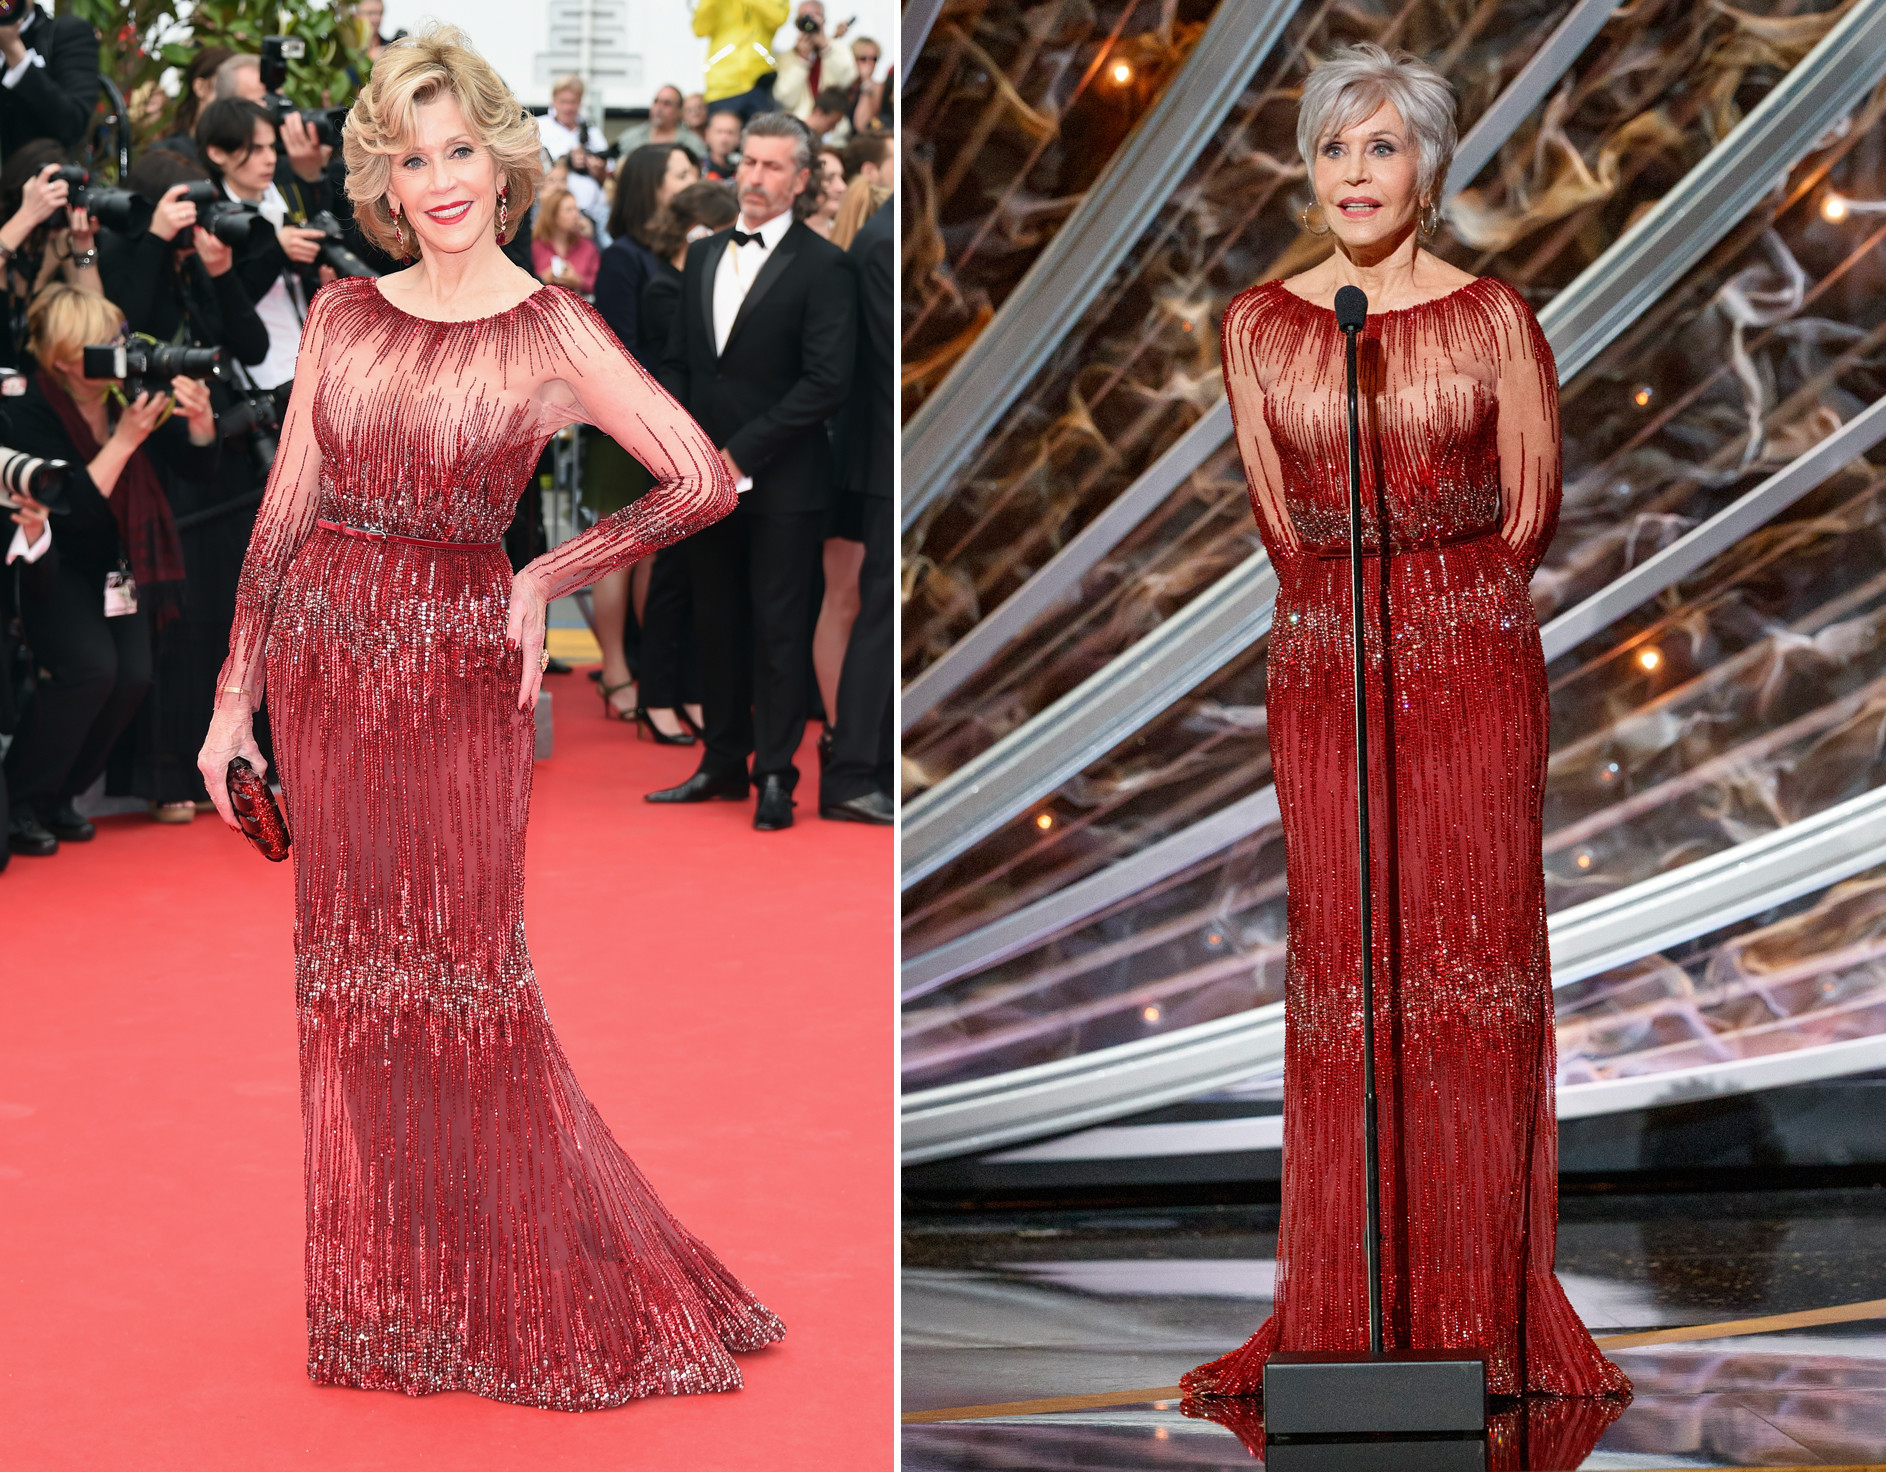 Jane Fonda recycles 6-year-old gown at Oscars